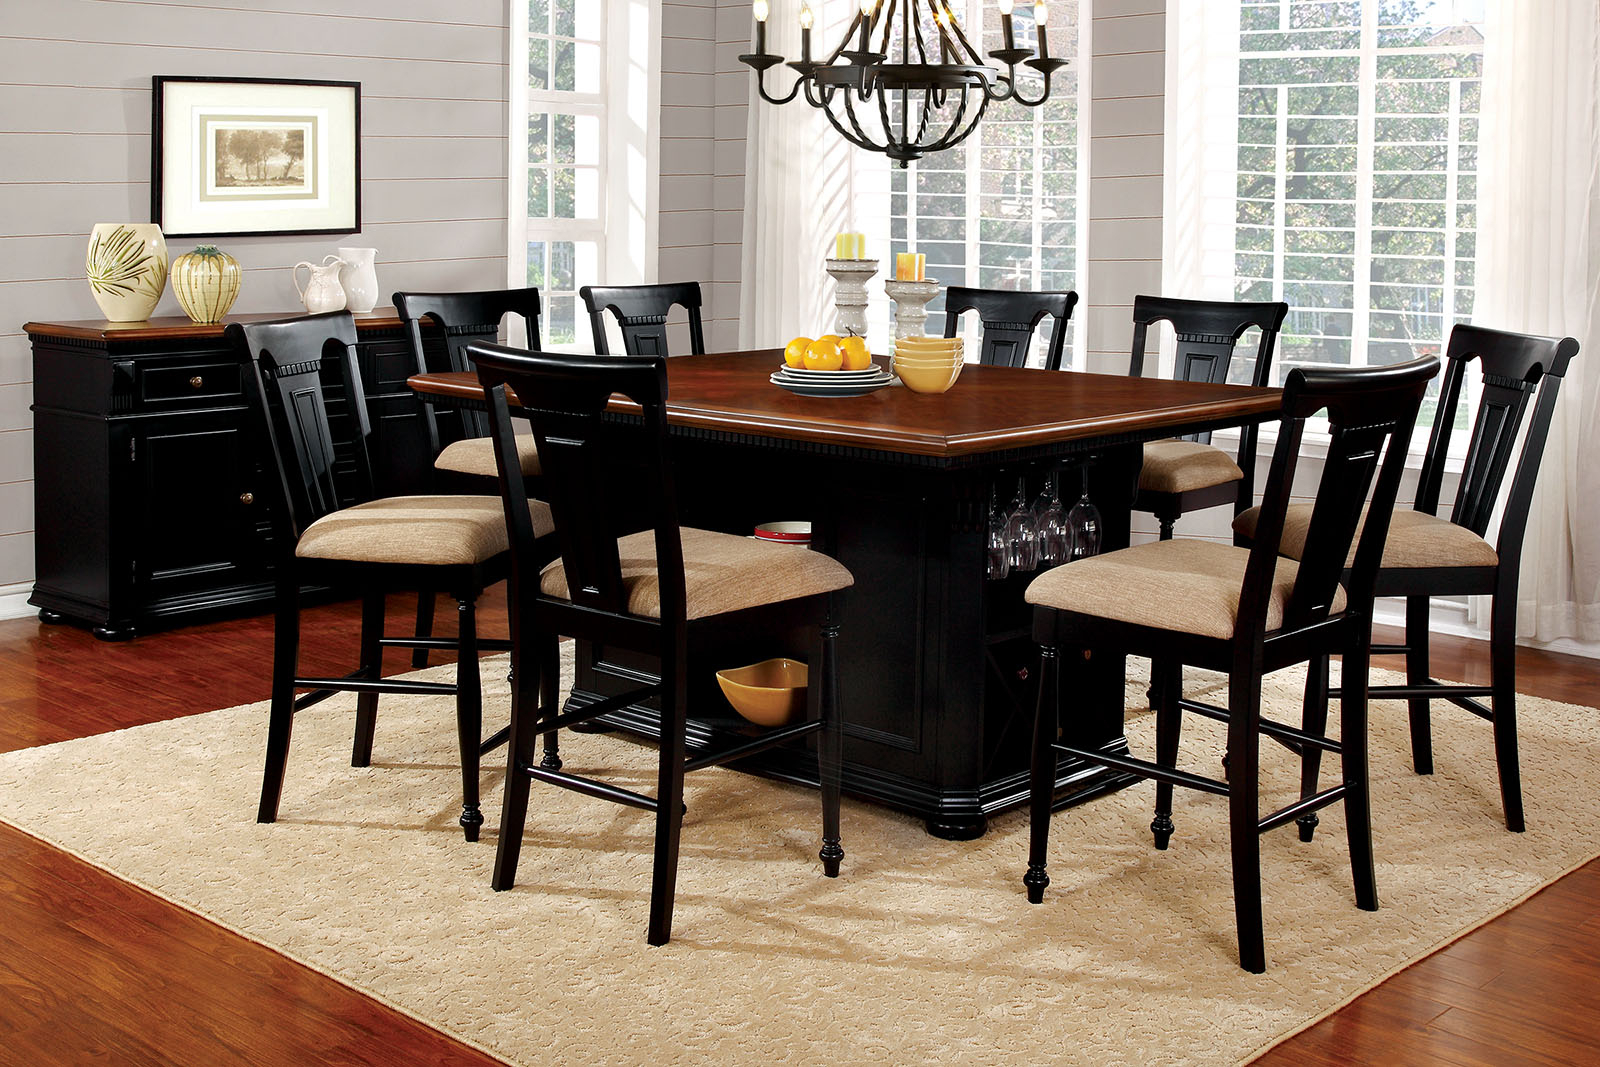 Counter Height Dining Table And Chairs Aspiration 9Pcs Throughout Most Up To Date Transitional 6 Seating Casual Dining Tables (View 5 of 30)